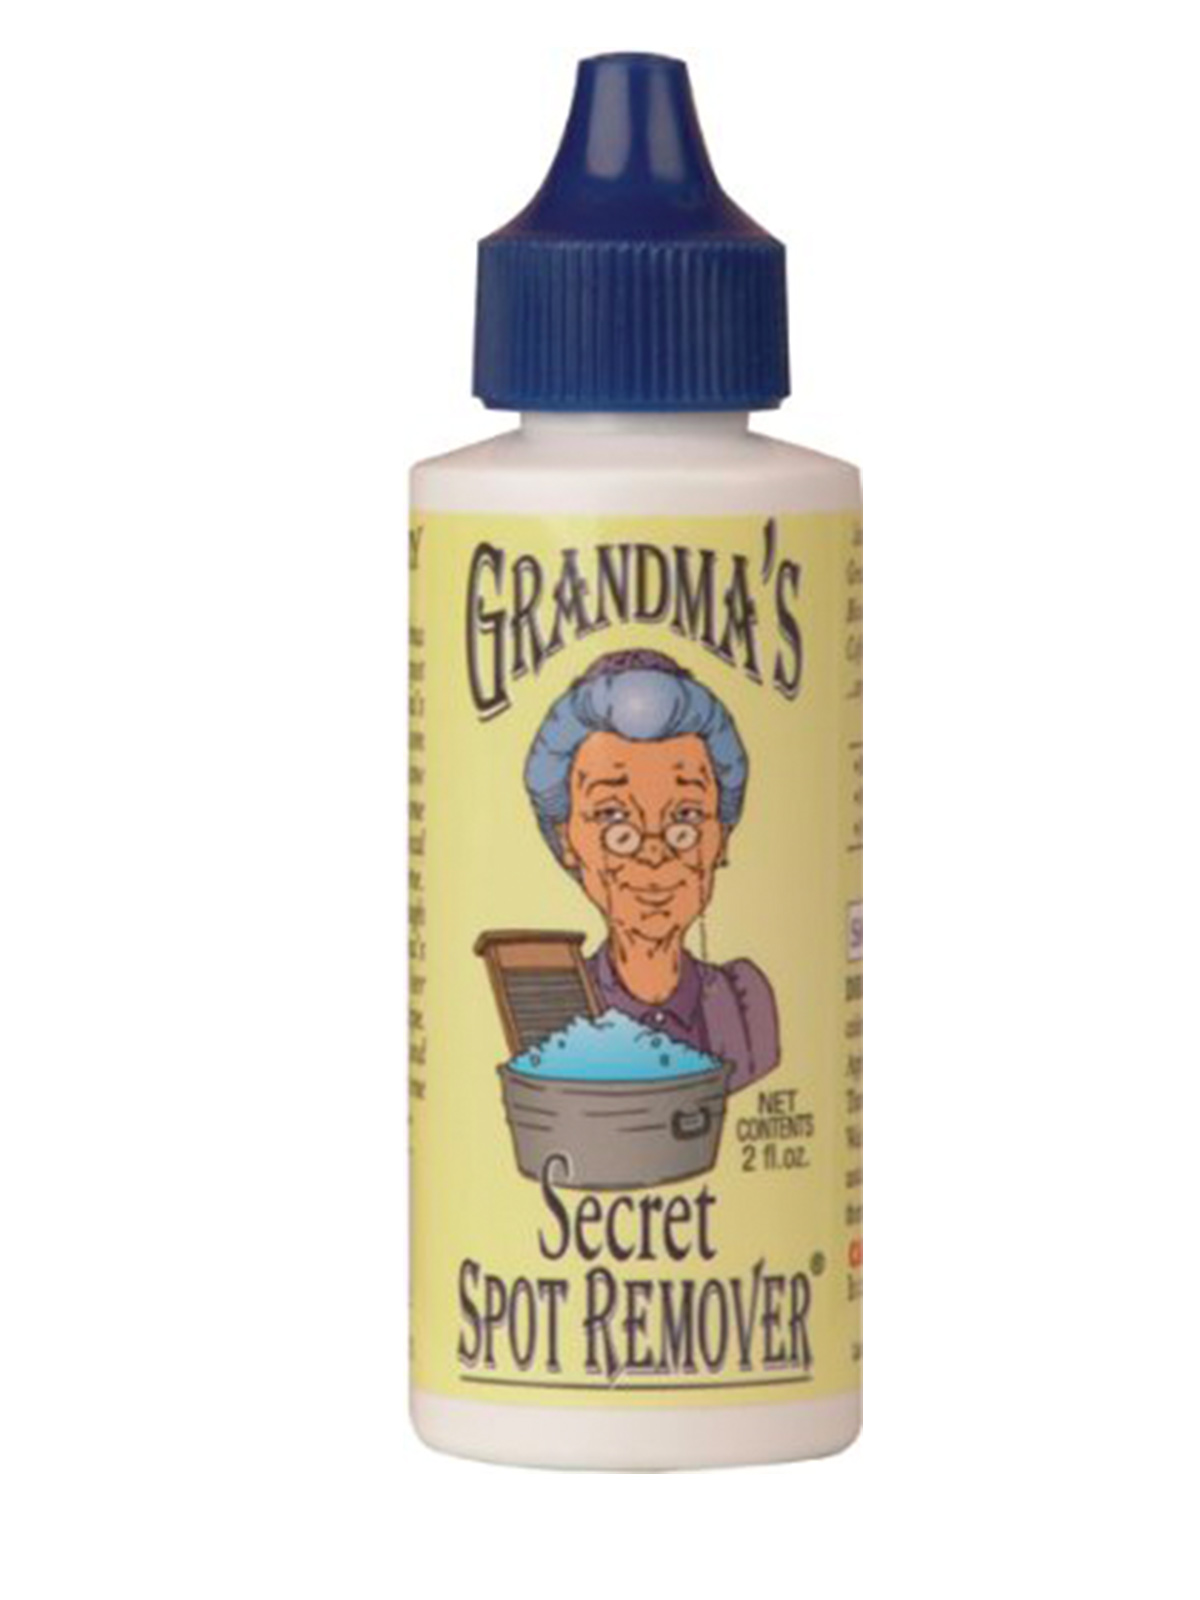 Best Mini Travel Stain Removers, Grandma's Stain Remover